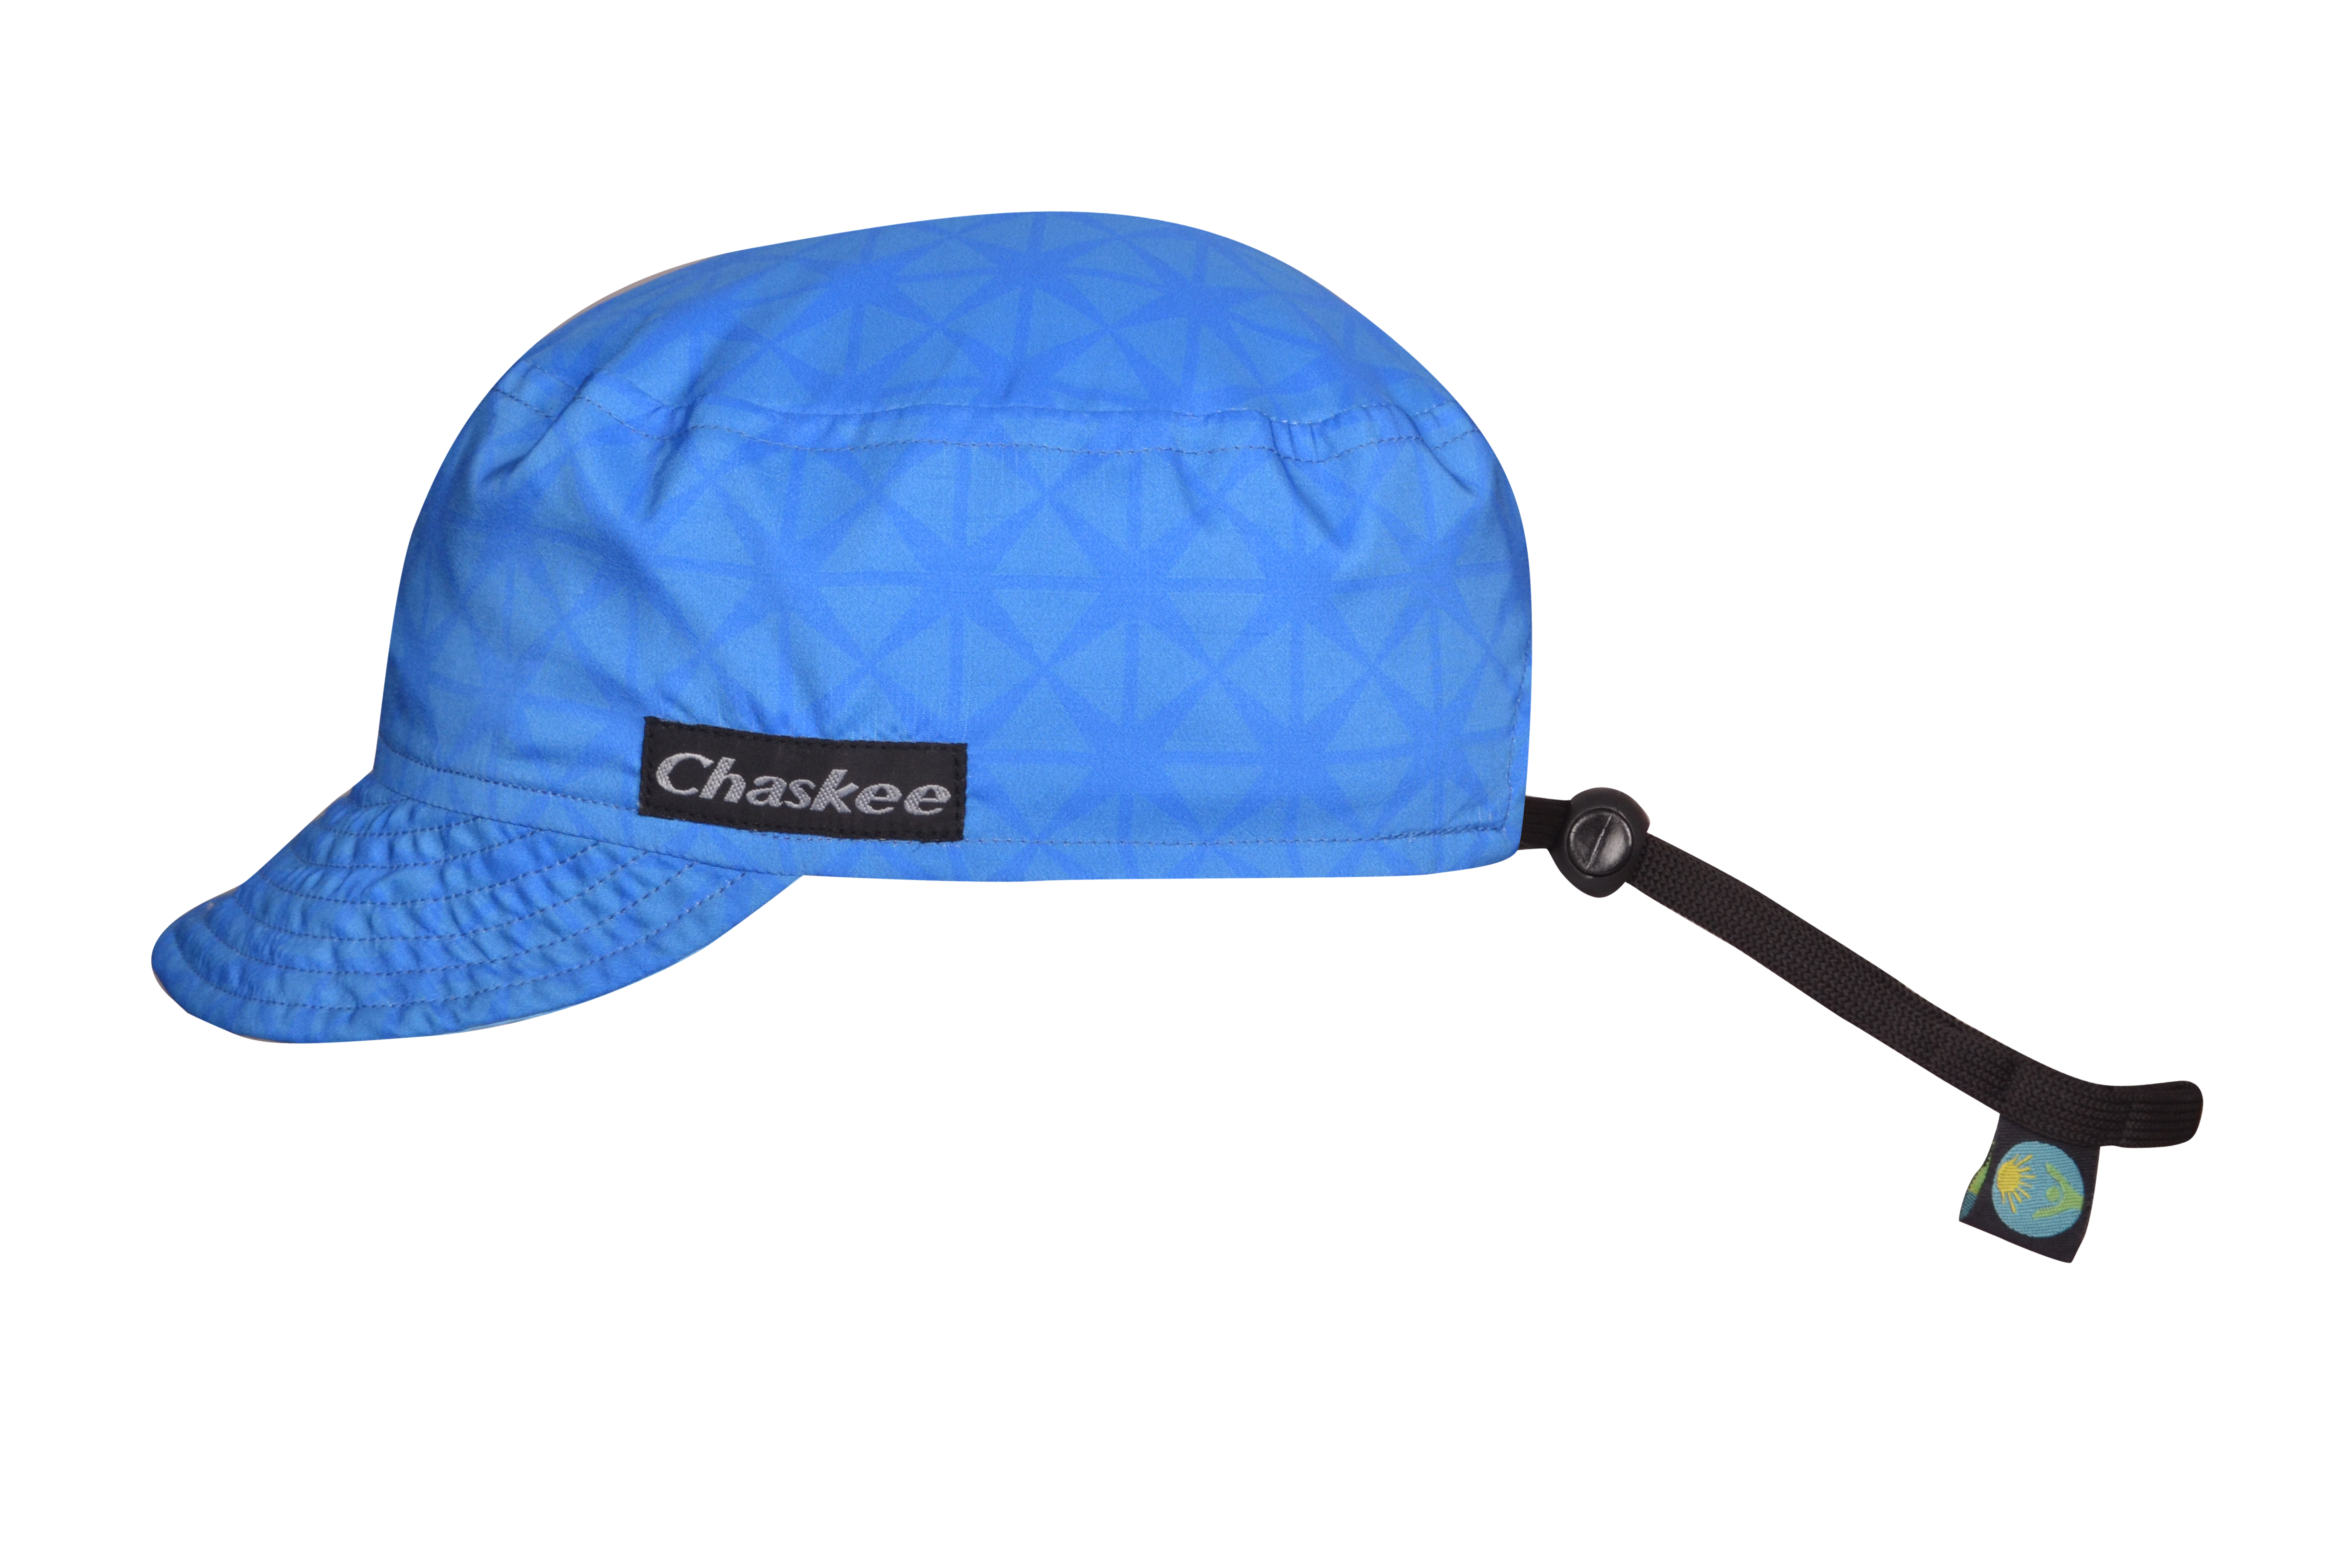 Chaskee Junior Rev Cap - Kinder Wendekappe blau